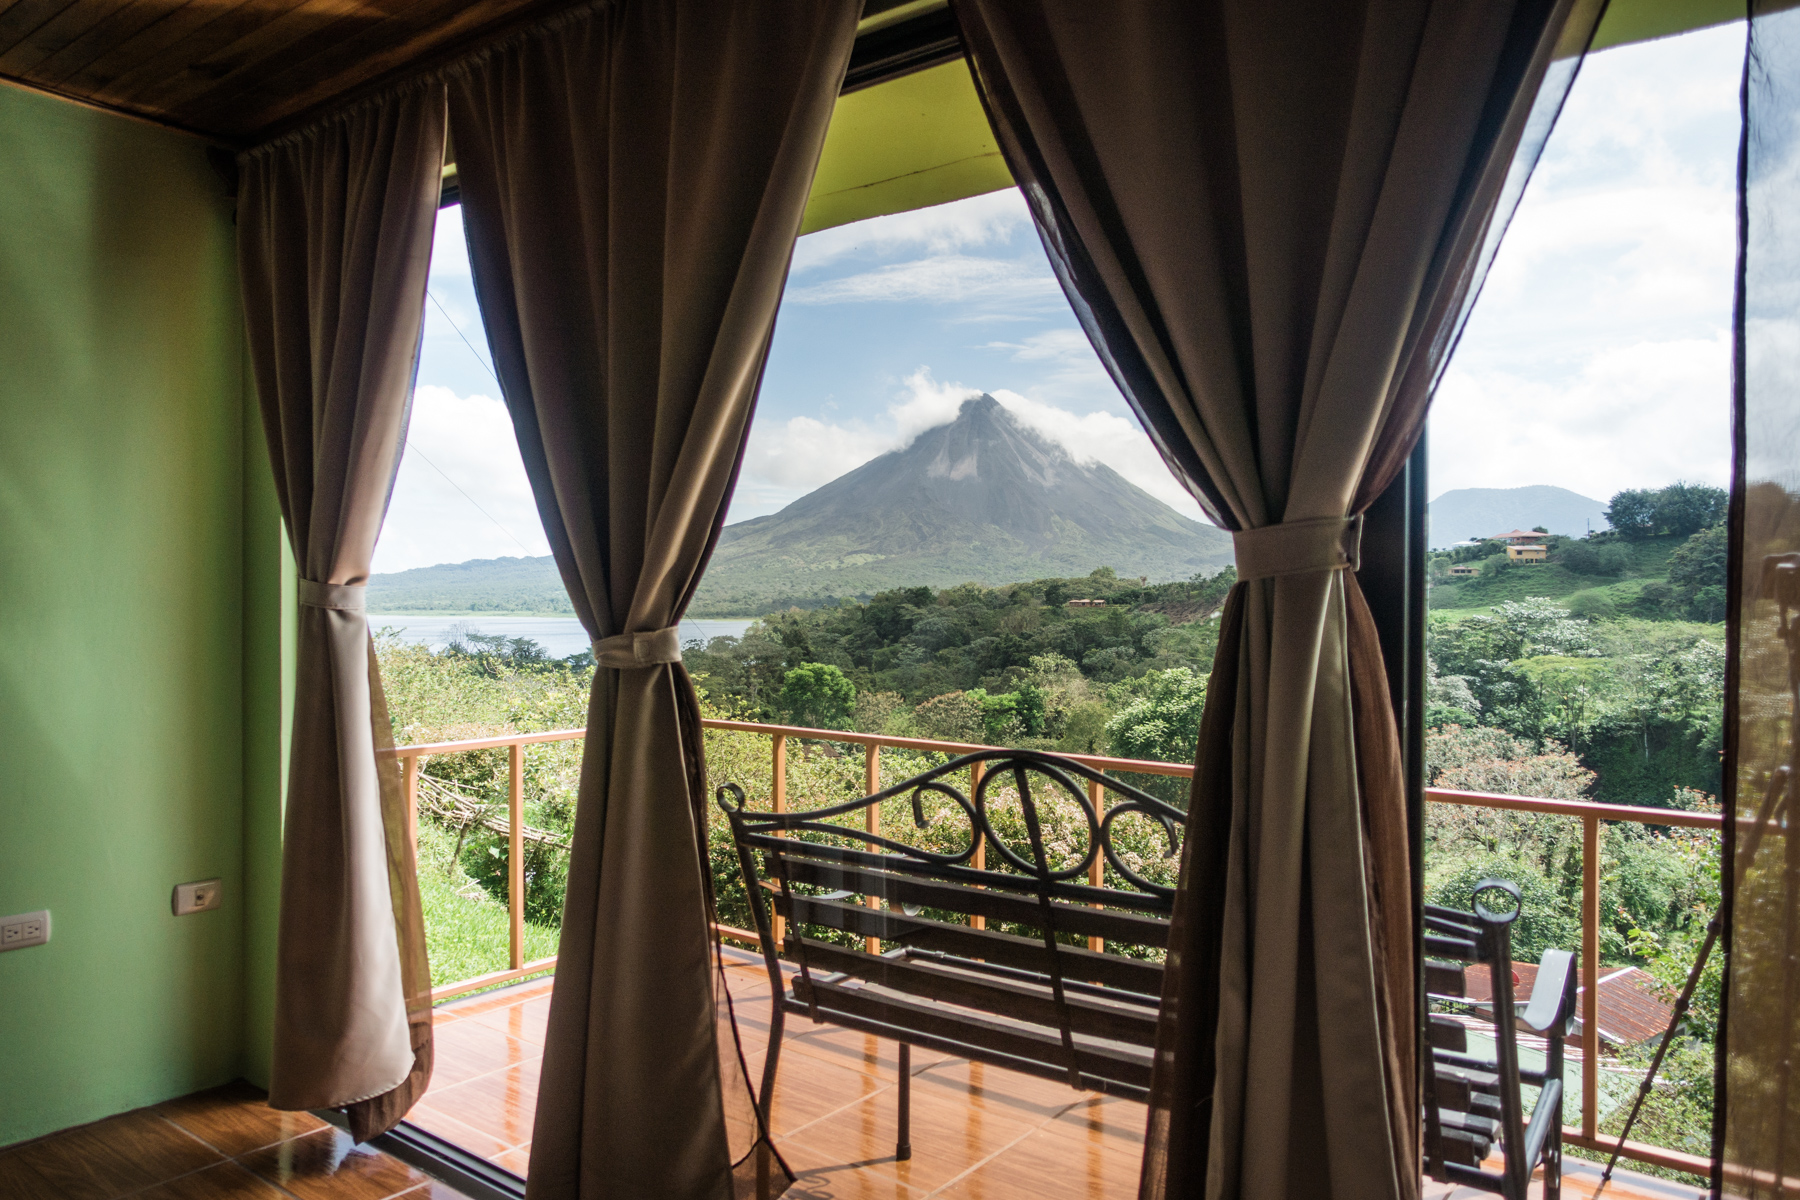 Small local hotels sometimes have listings on Airbnb, too. Here's the view from Castillo Del Arenal in Costa Rica.